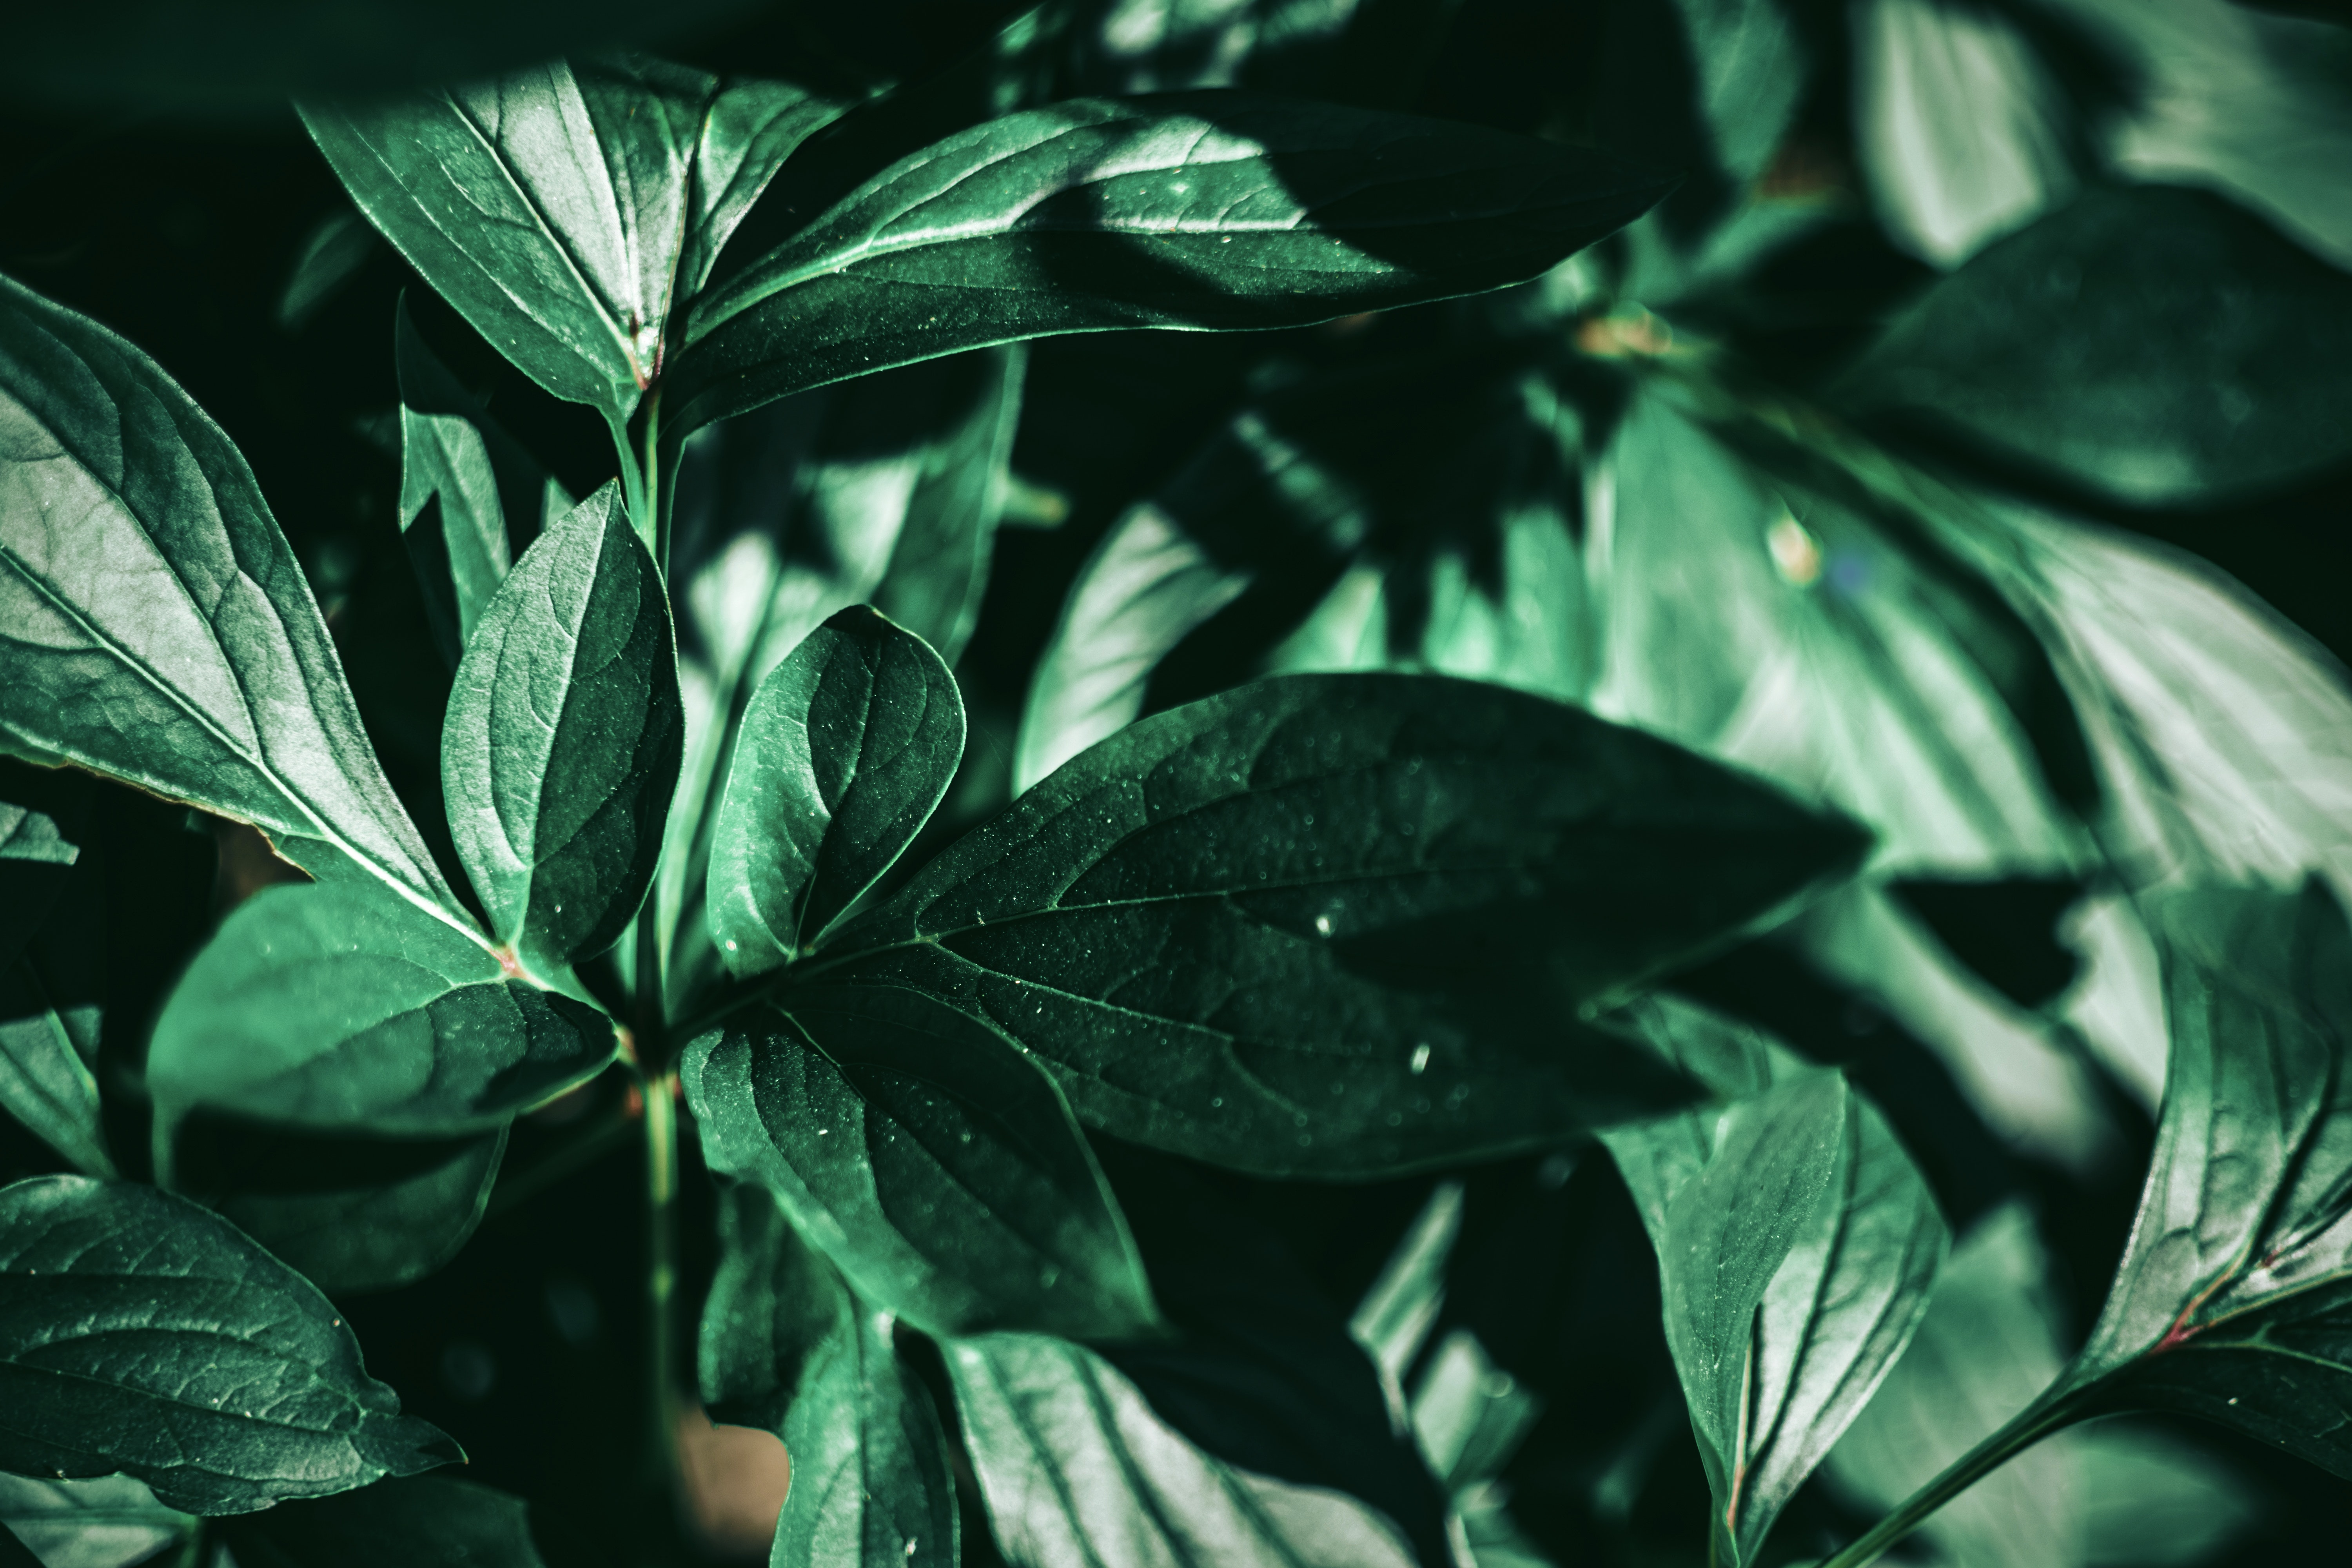 Selective focus photo of a green leafed plant